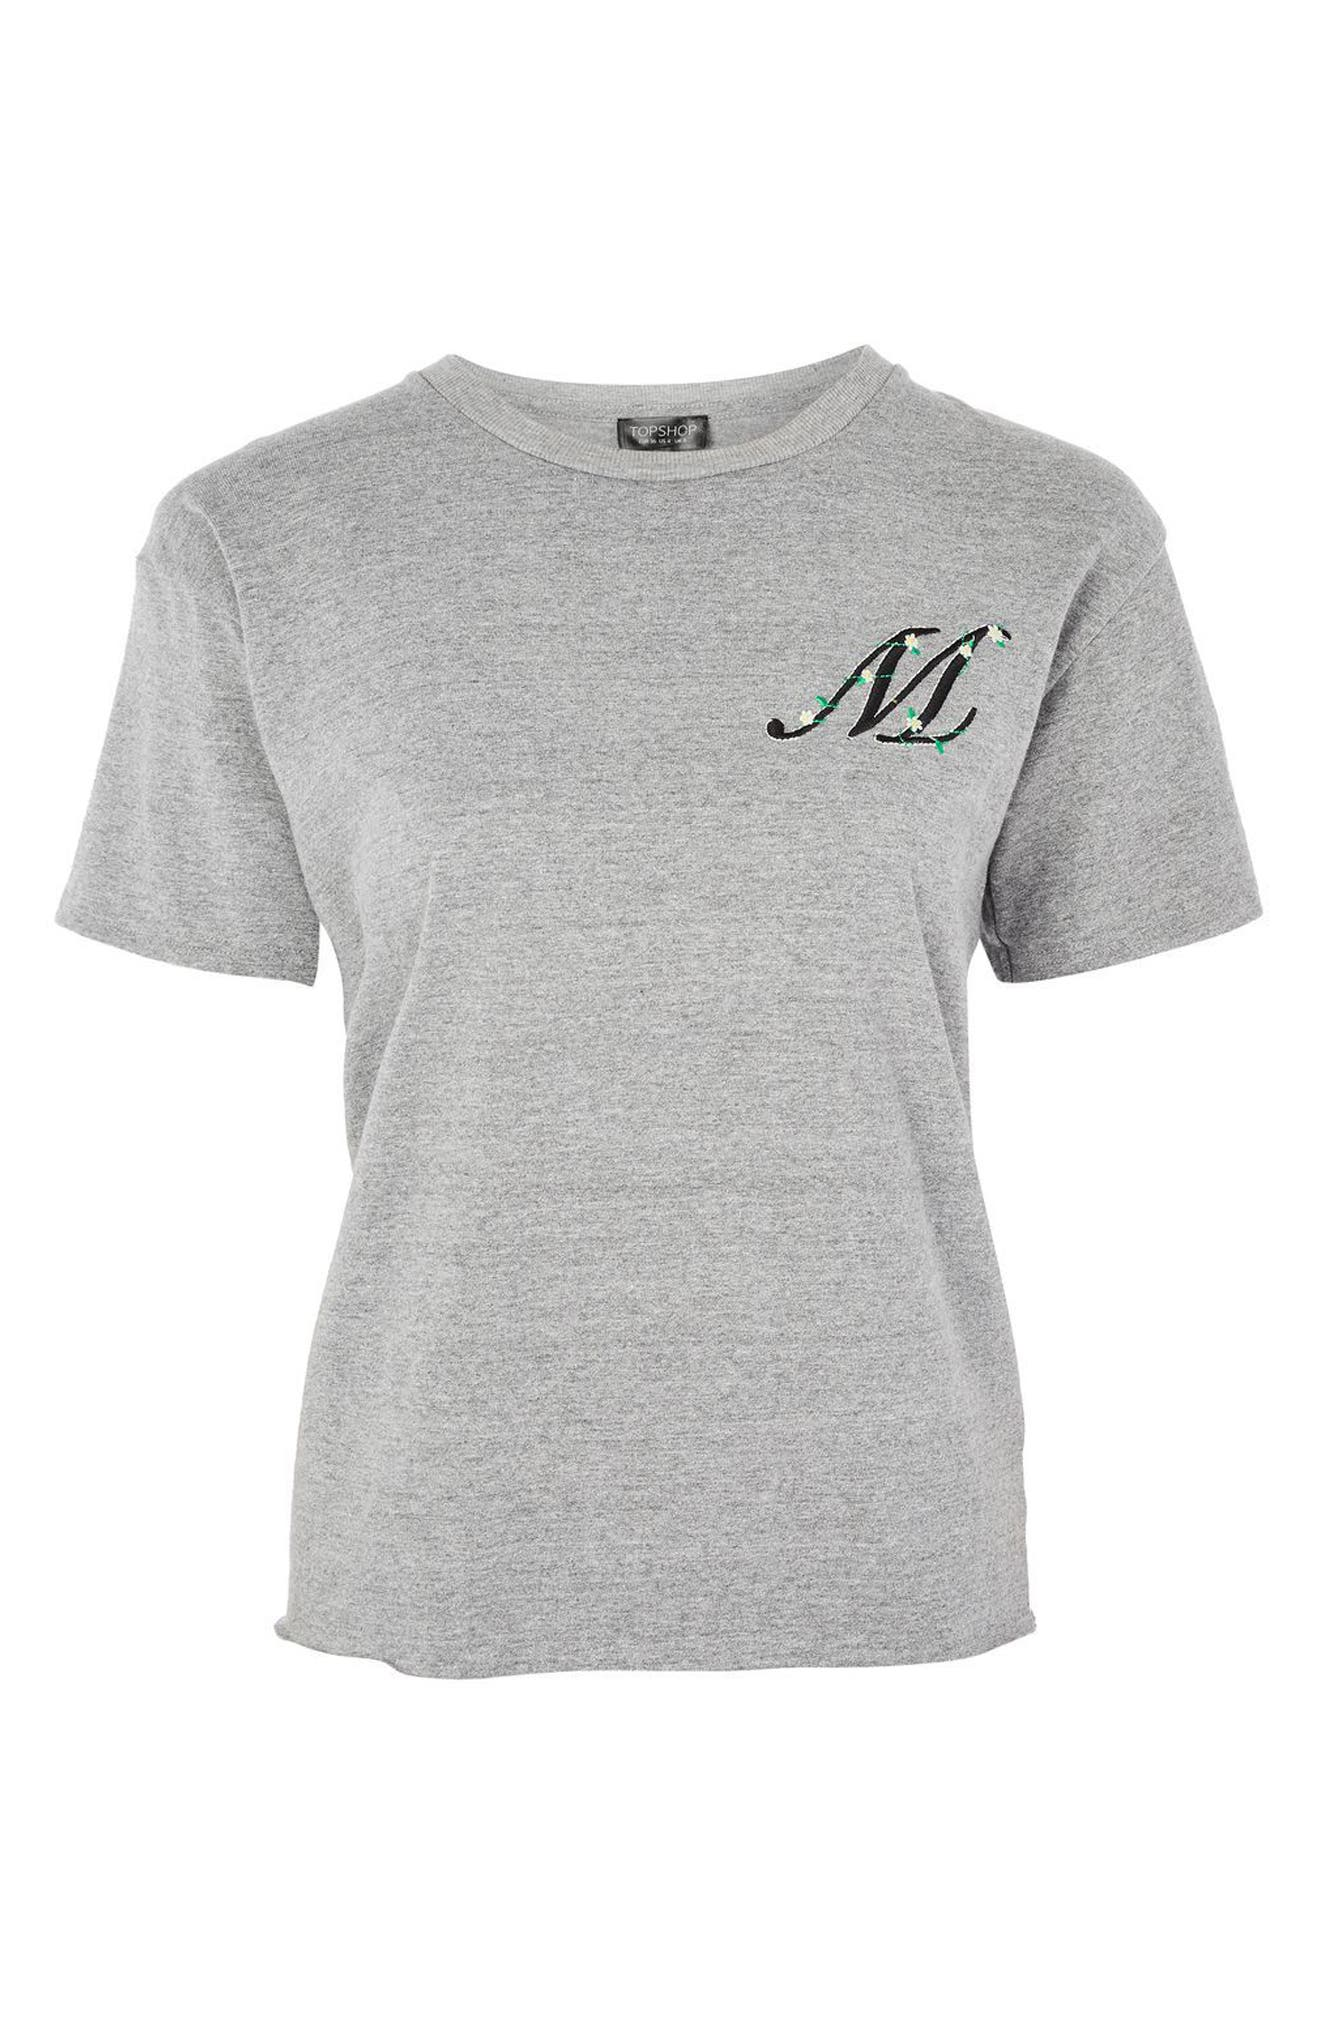 Alternate Image 3  - Topshop Initial Embroidered Tee